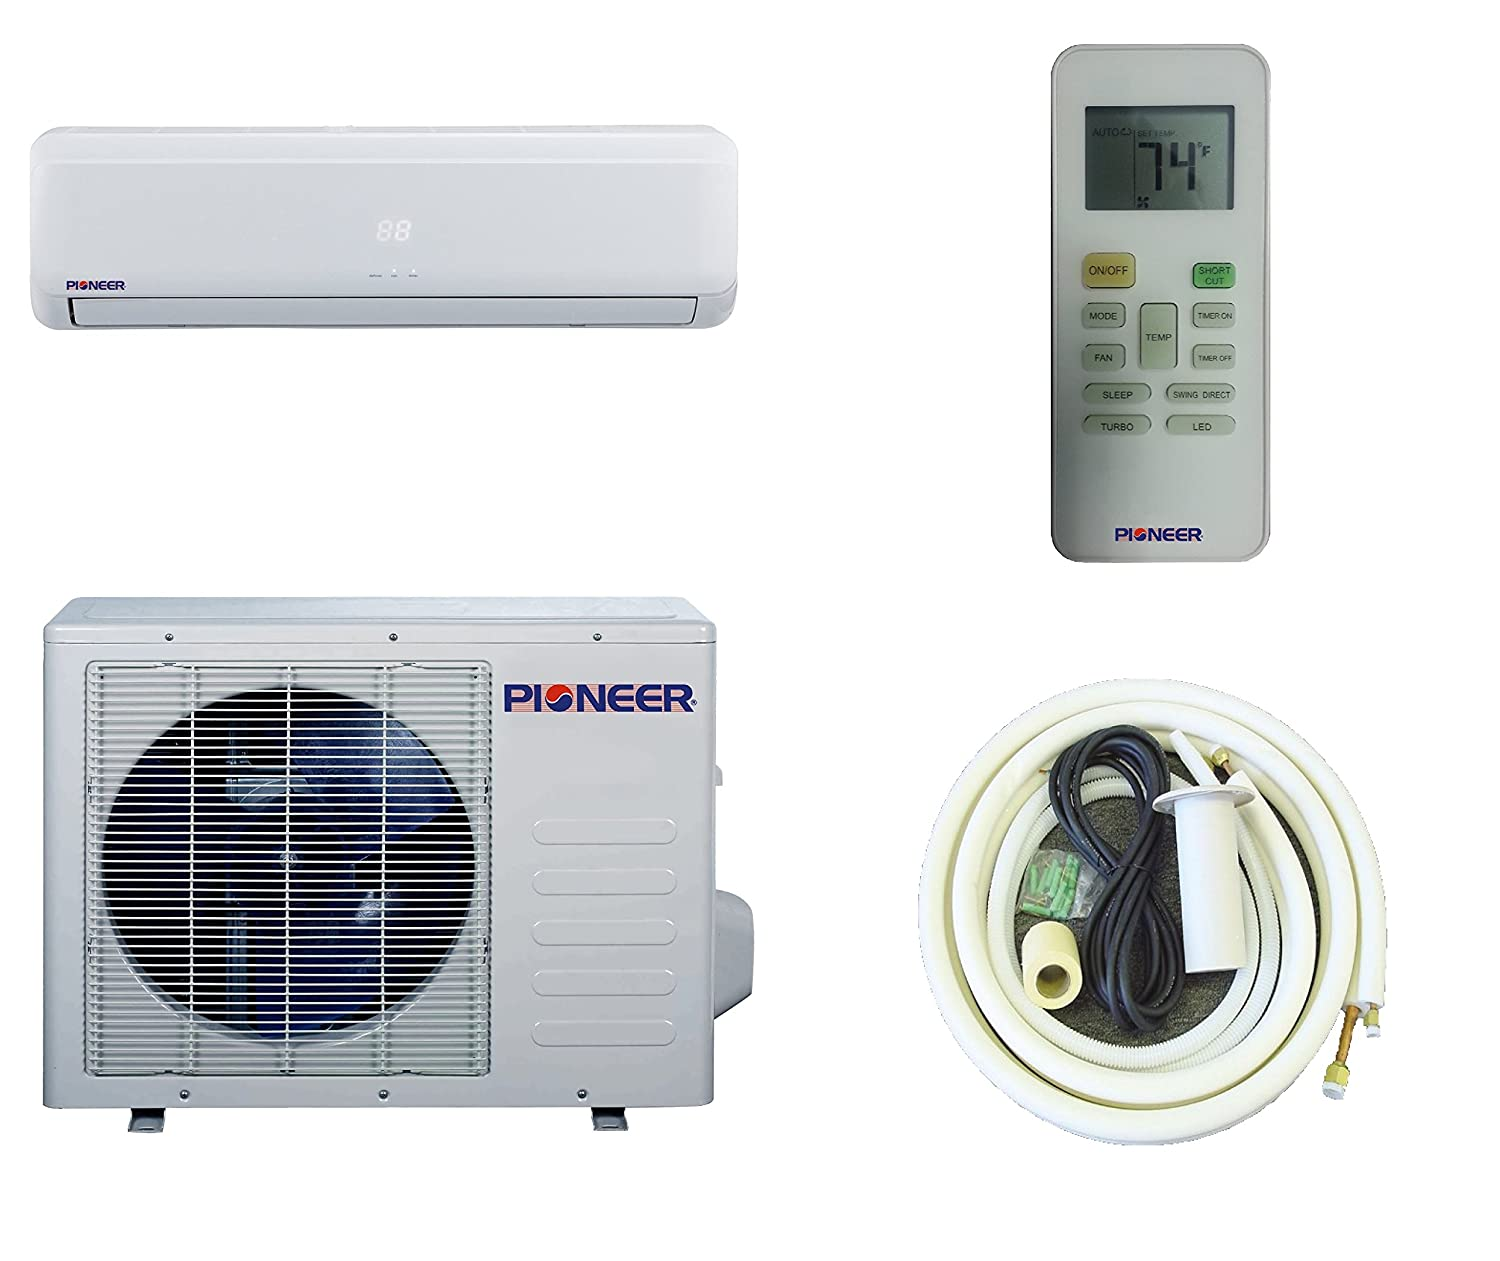 #716F45 Pioneer Ductless Wall Mount Mini Split INVERTER Air  Most Effective 7075 Wall Mount Package Ac Units pictures with 1500x1261 px on helpvideos.info - Air Conditioners, Air Coolers and more